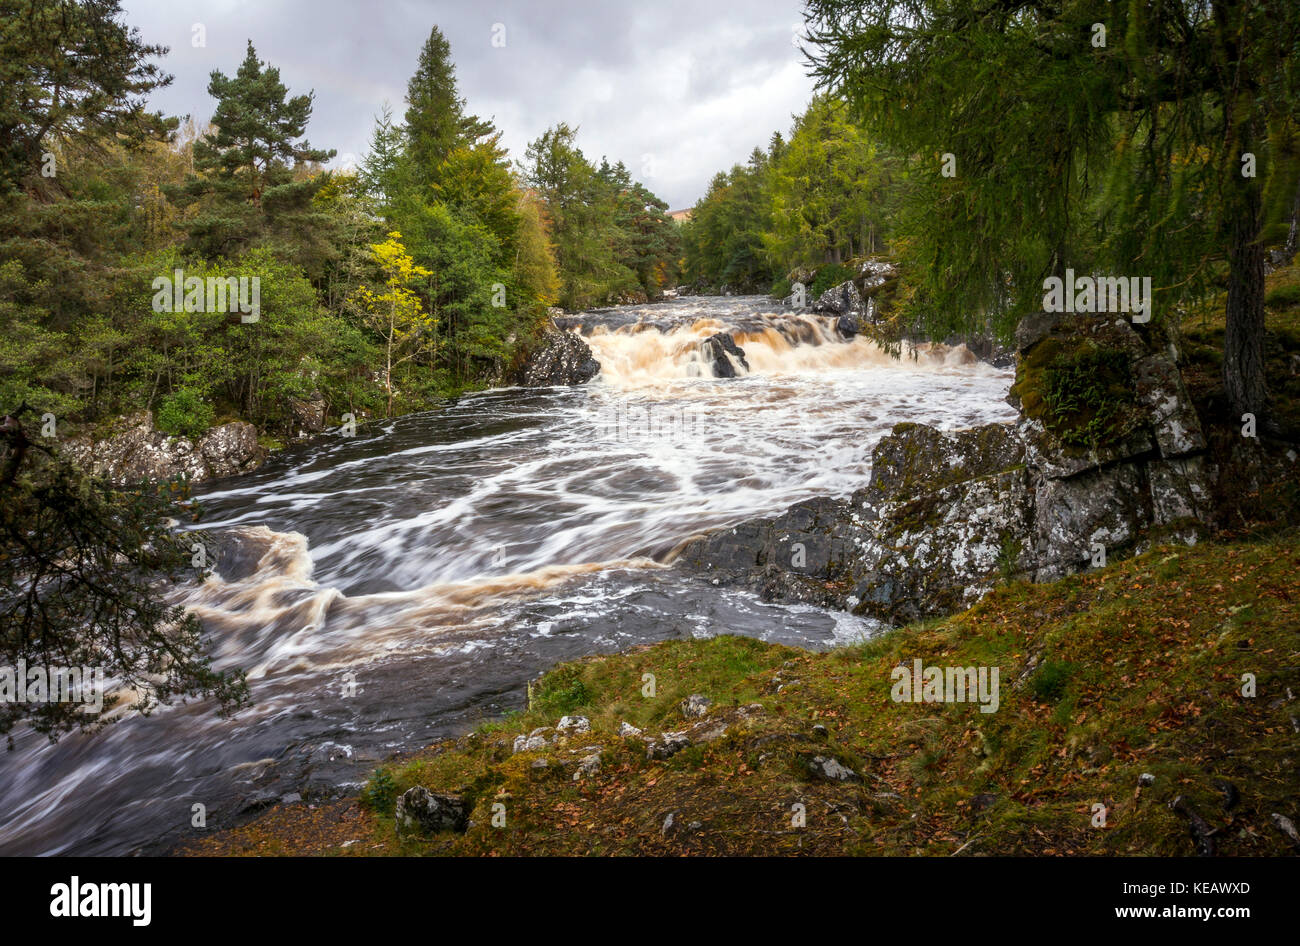 Cassley Falls or Achness Waterfall on the River Cassley near Rosehall, Sutherland, Scottish Highlands, UK Stock Photo